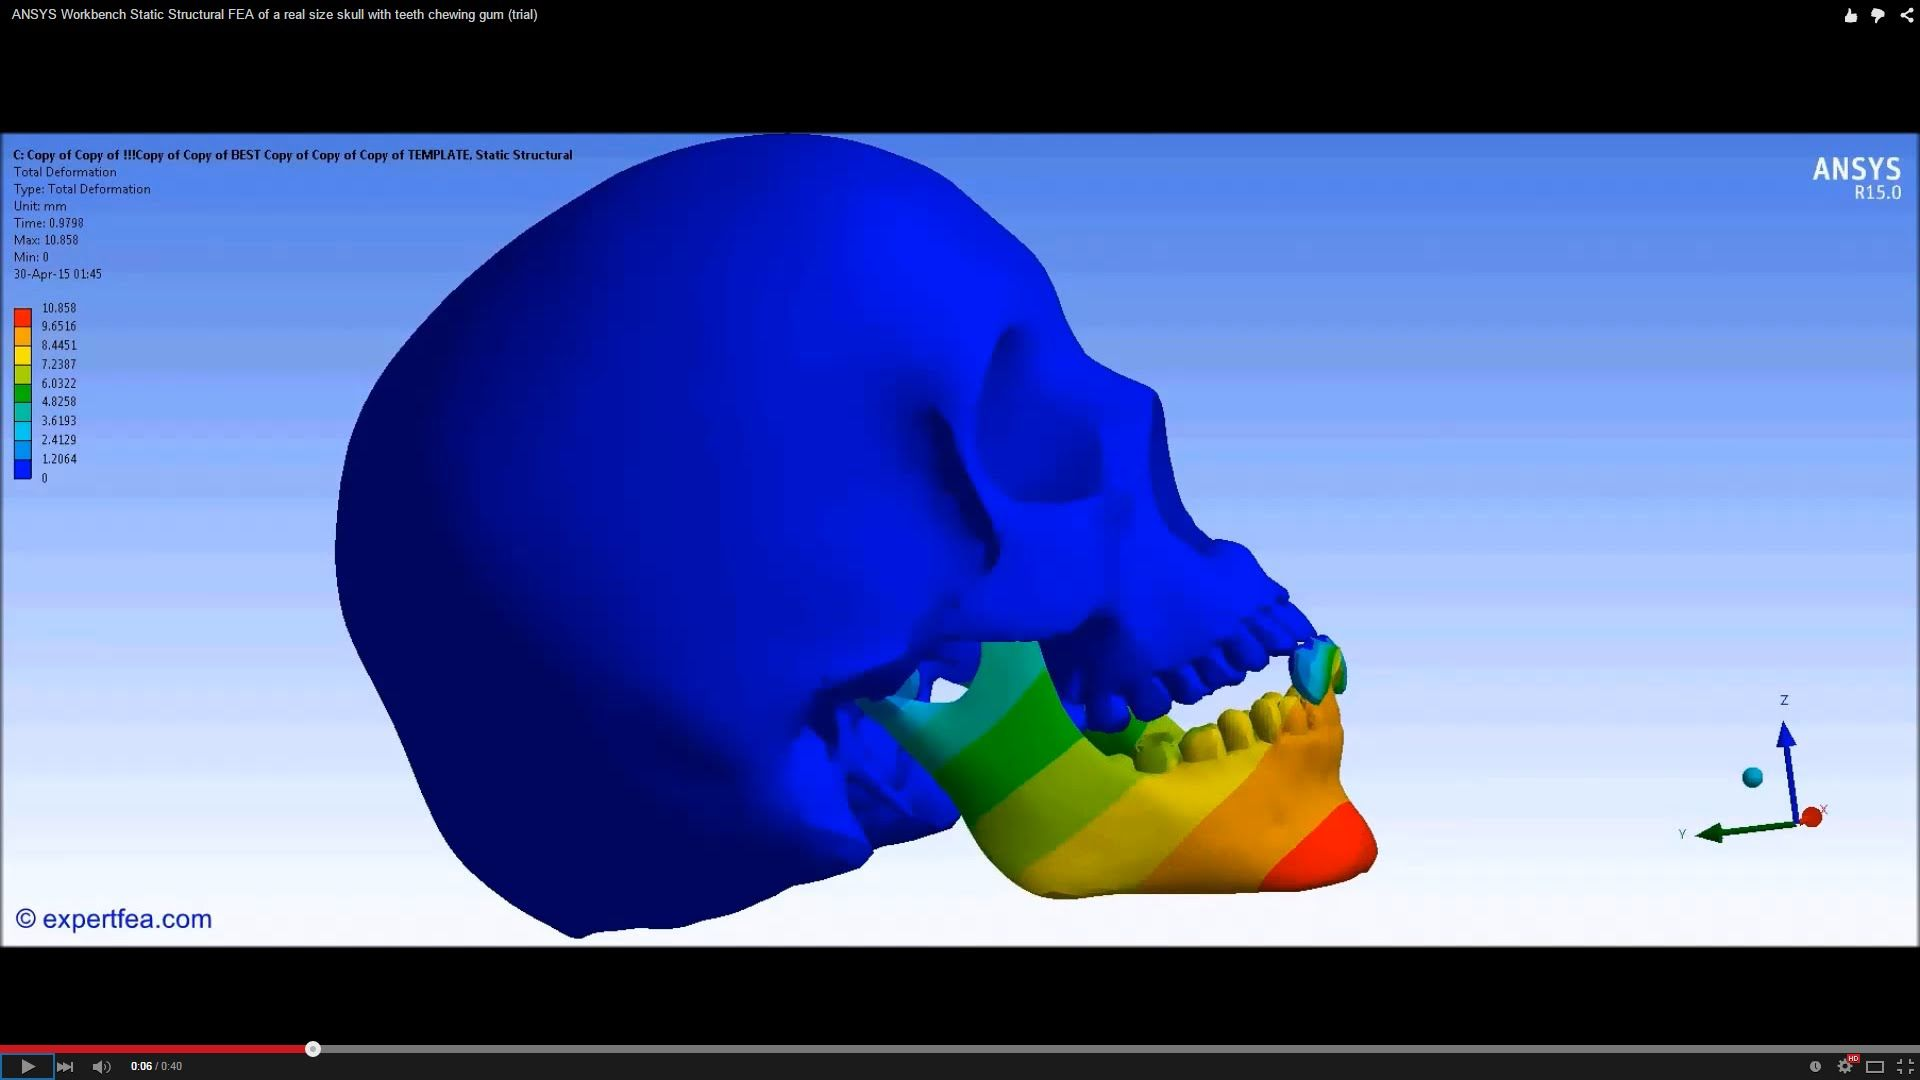 ANSYS Workbench Biomechanics FEA of a real size skull with